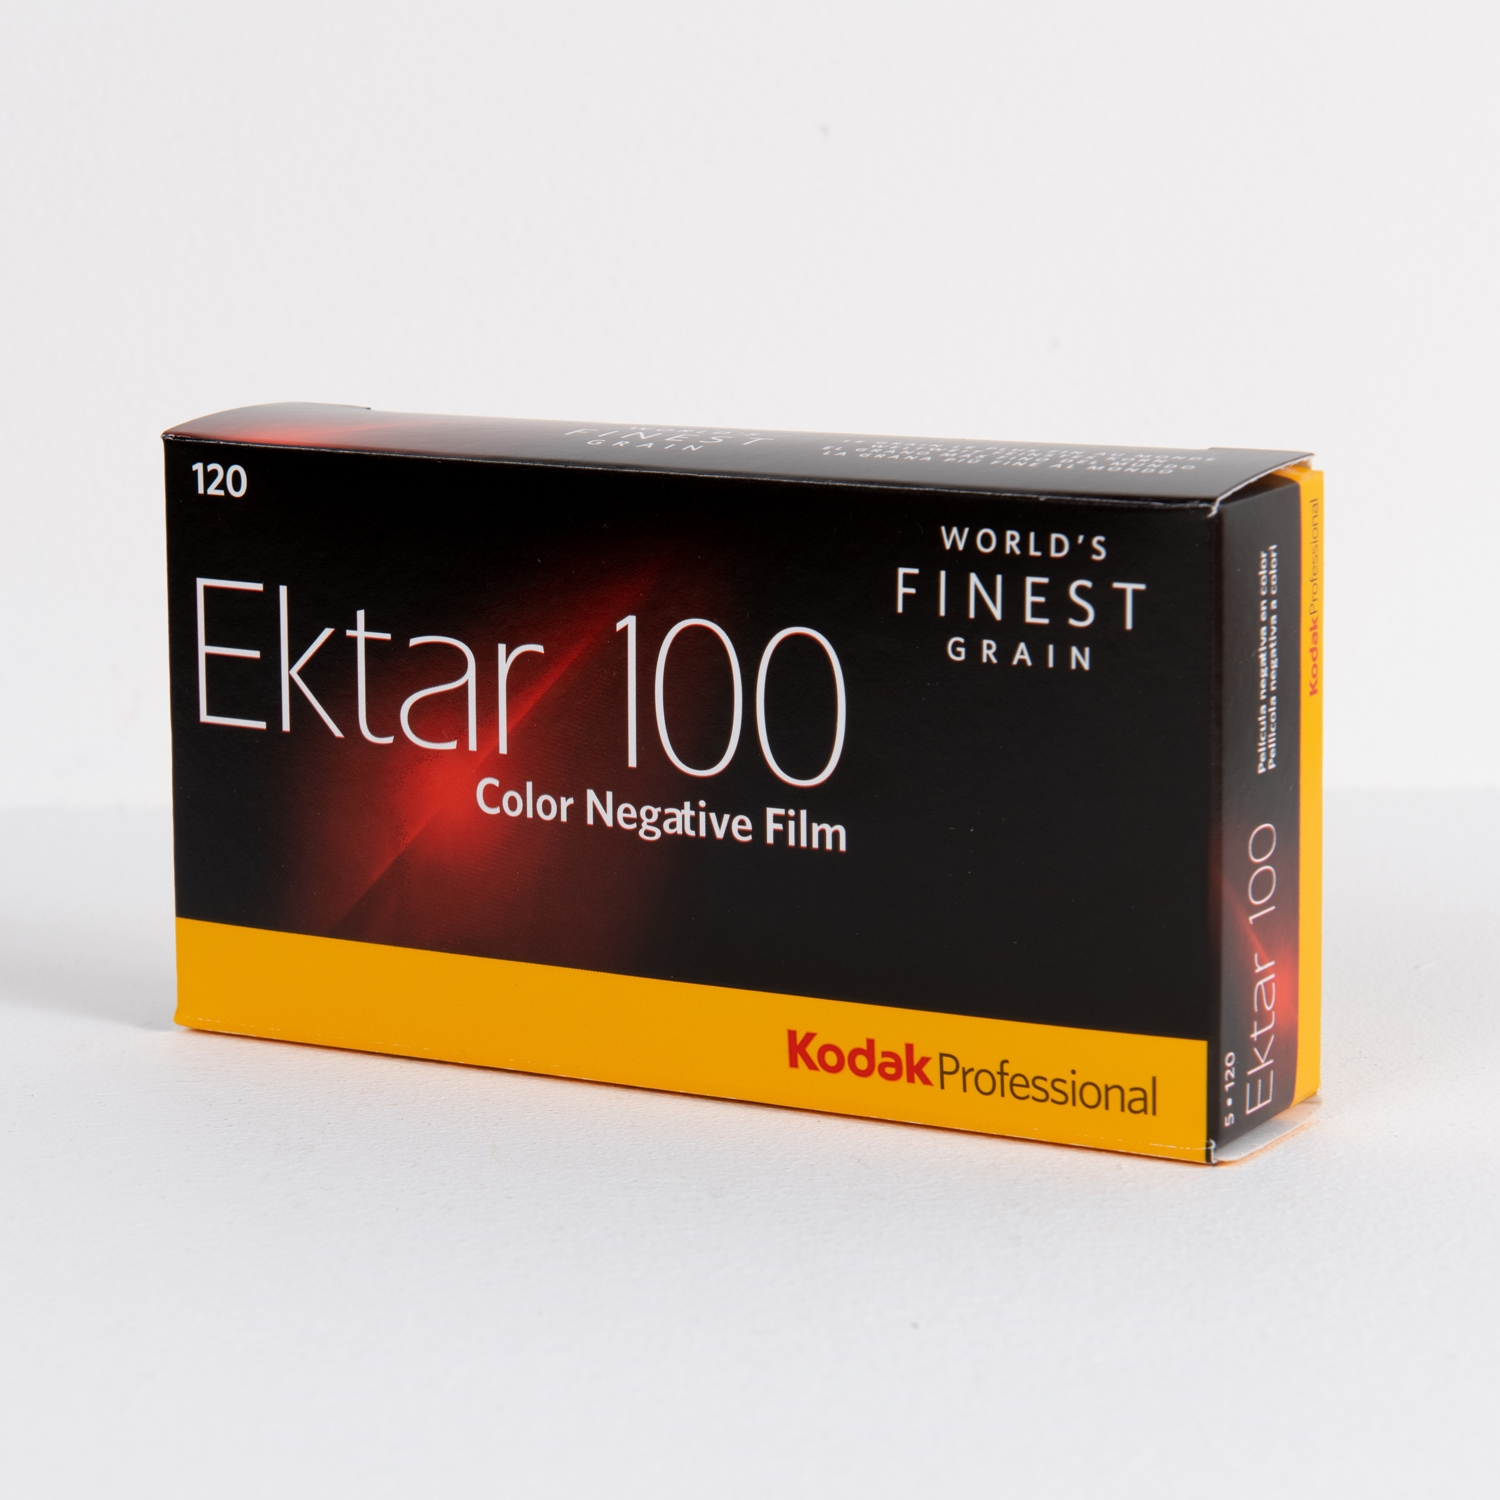 Kodak Ektar 100 (120) 5-Pack Color Negative Film